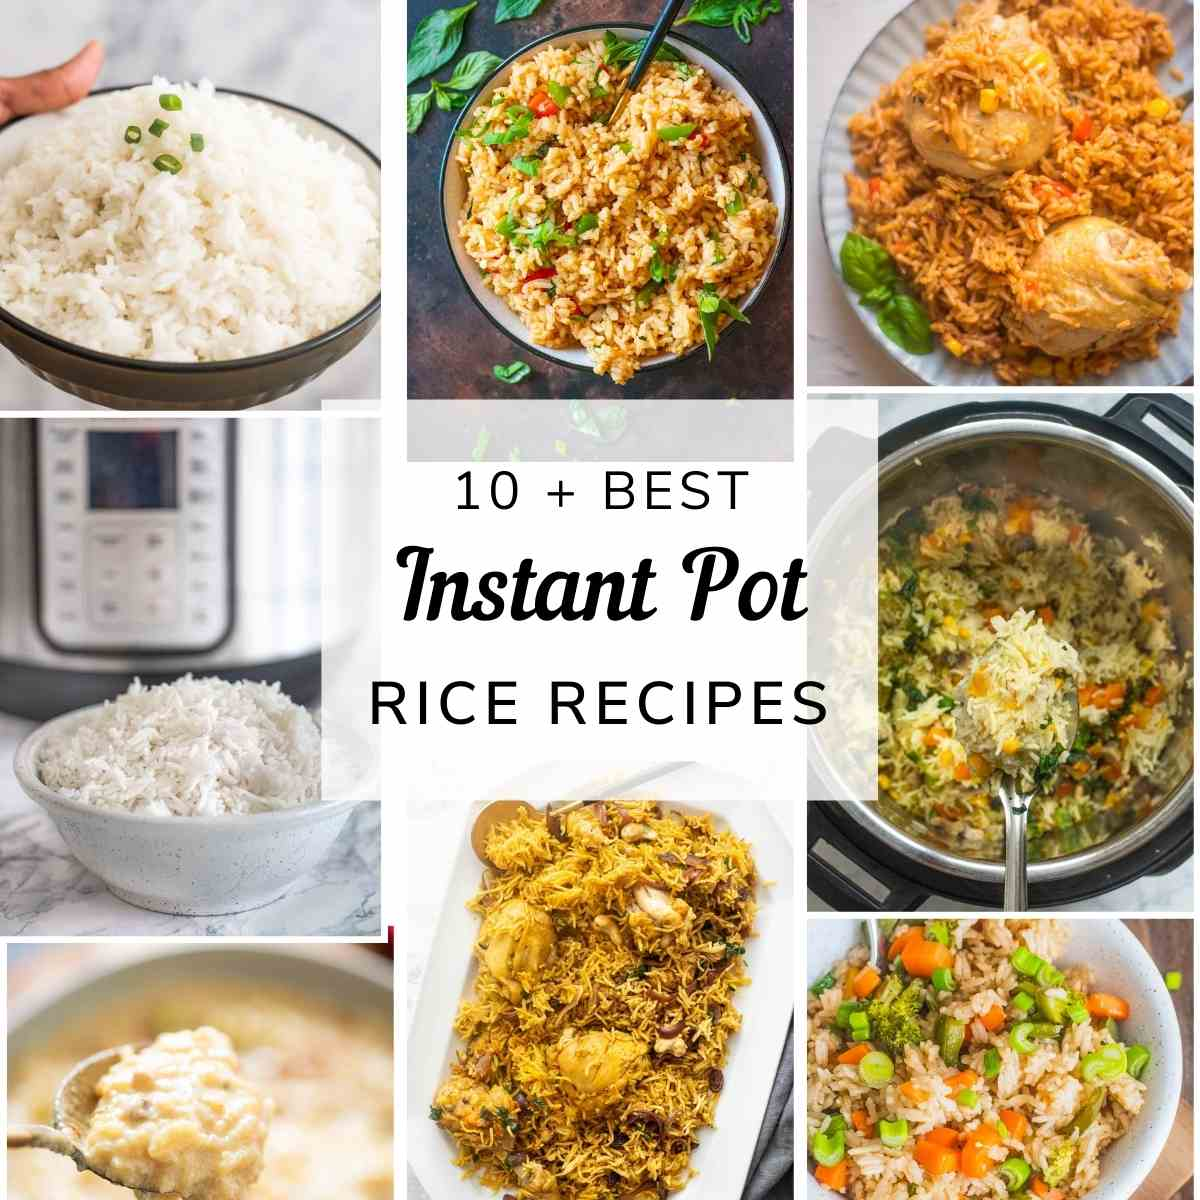 A collage of reice based Instant Pot recipes